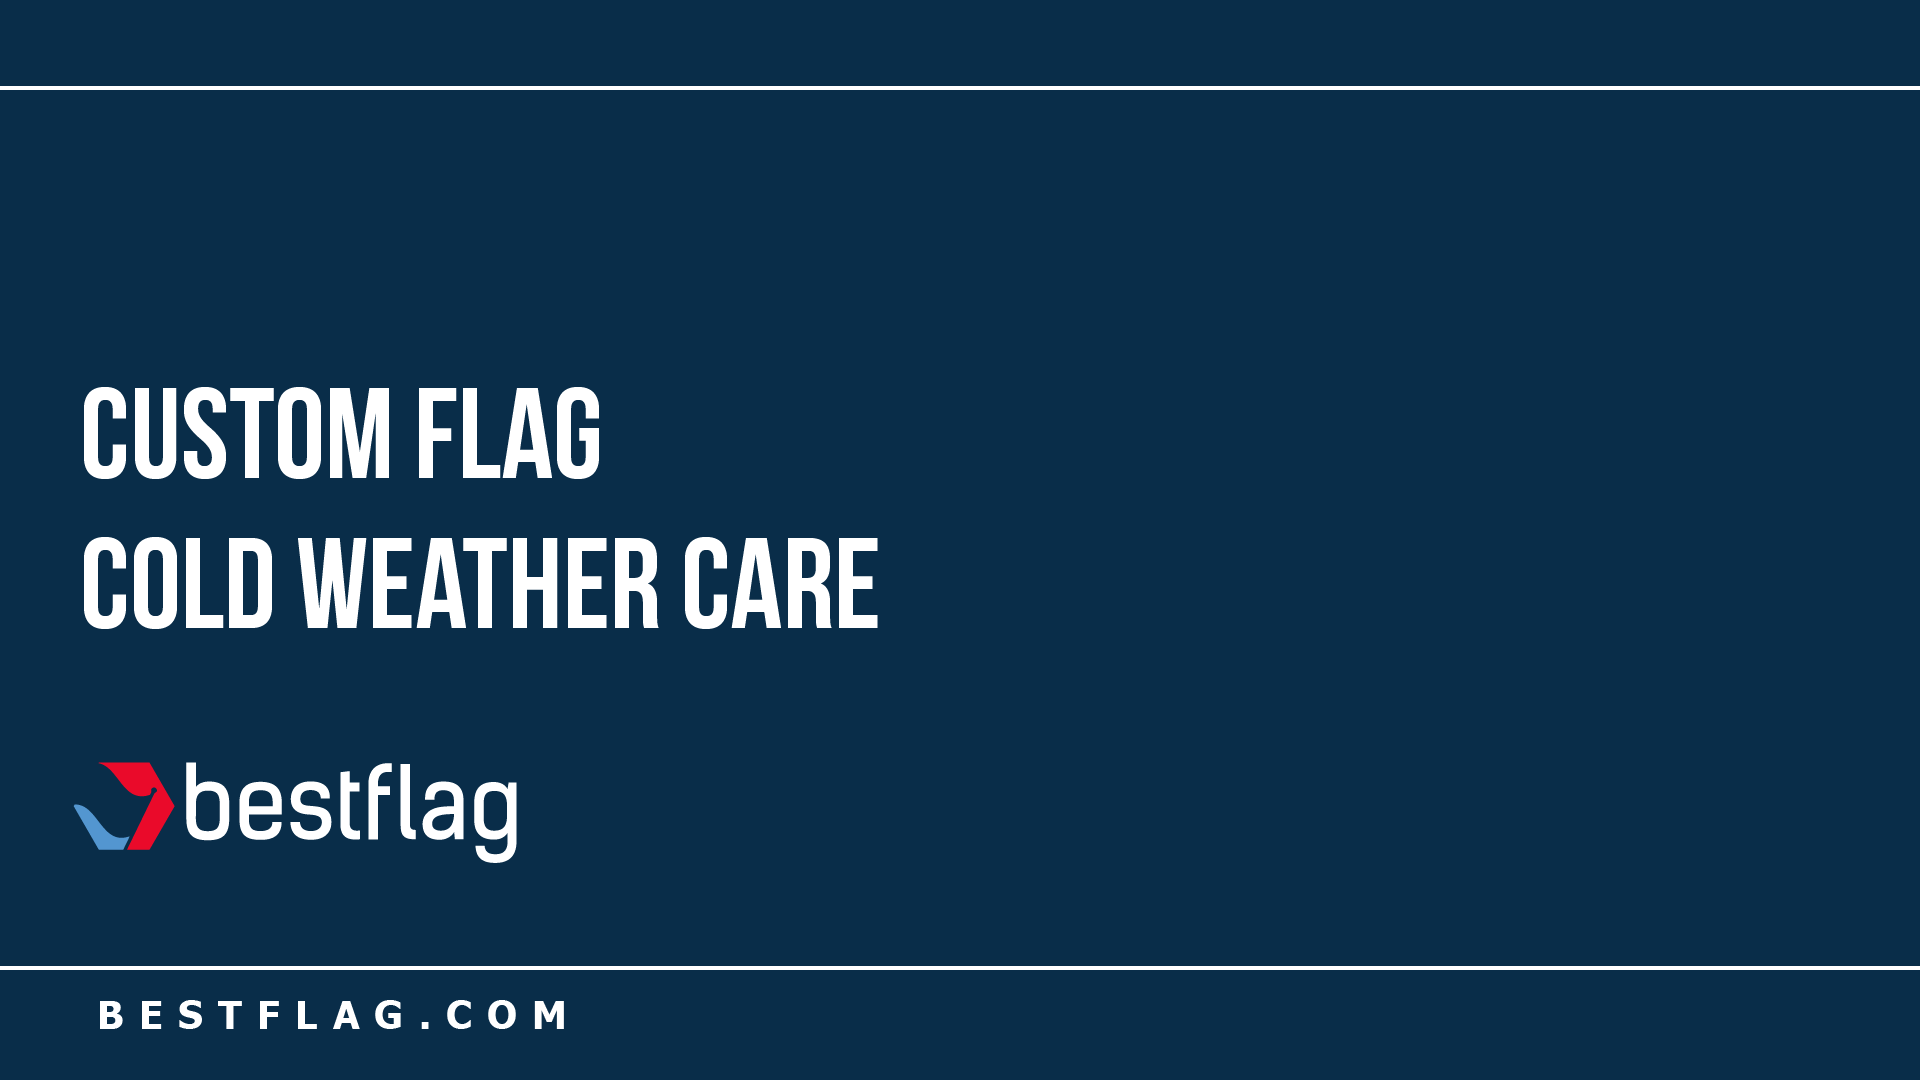 Custom Flag Cold Weather Care